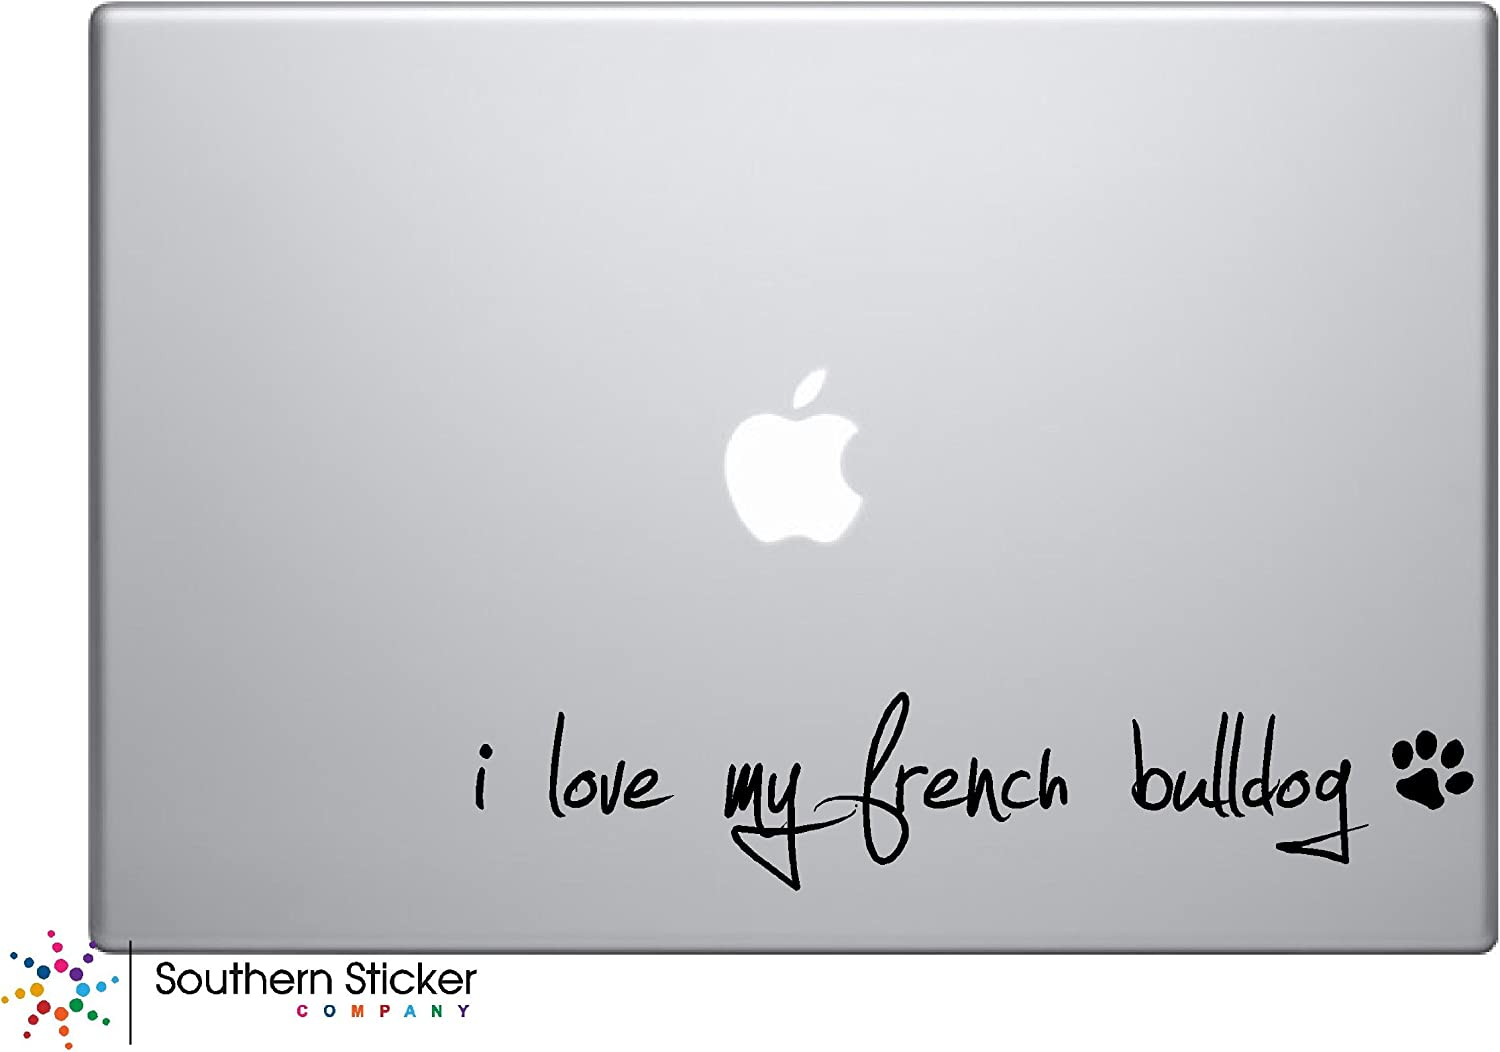 I Love My French Bulldog Dog Puppy Vinyl Car Sticker Symbol Silhouette Keypad Track Pad Decal Laptop Skin Ipad Macbook Window Truck Motorcycle